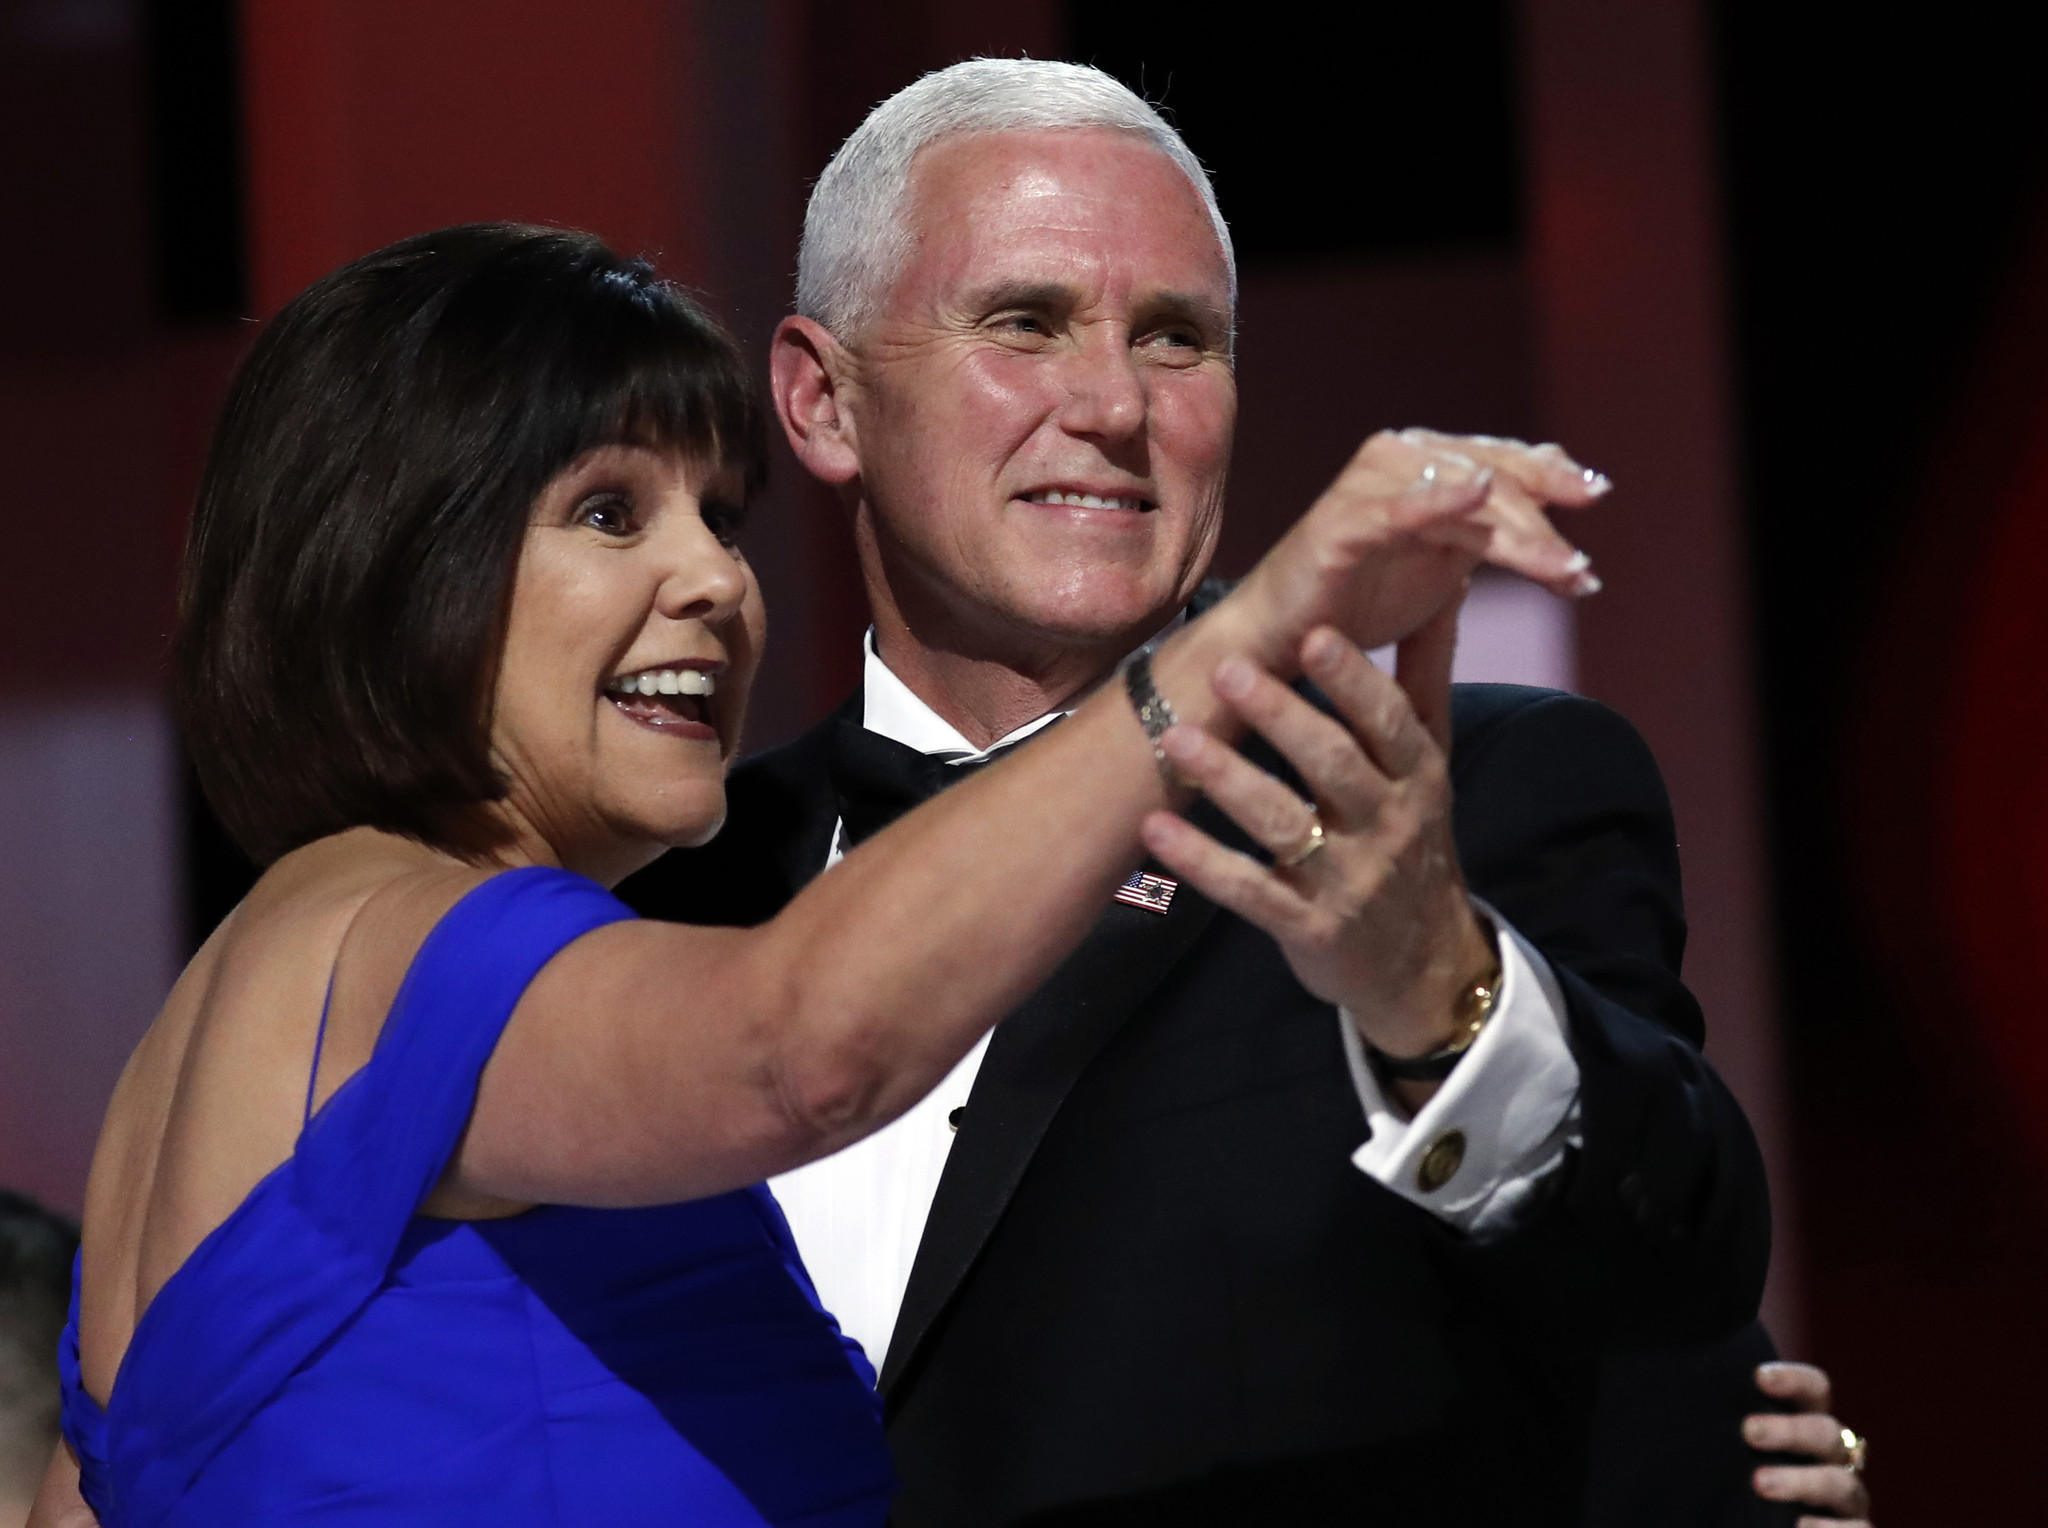 mike pence won't dine alone with a woman who's not his wife. is